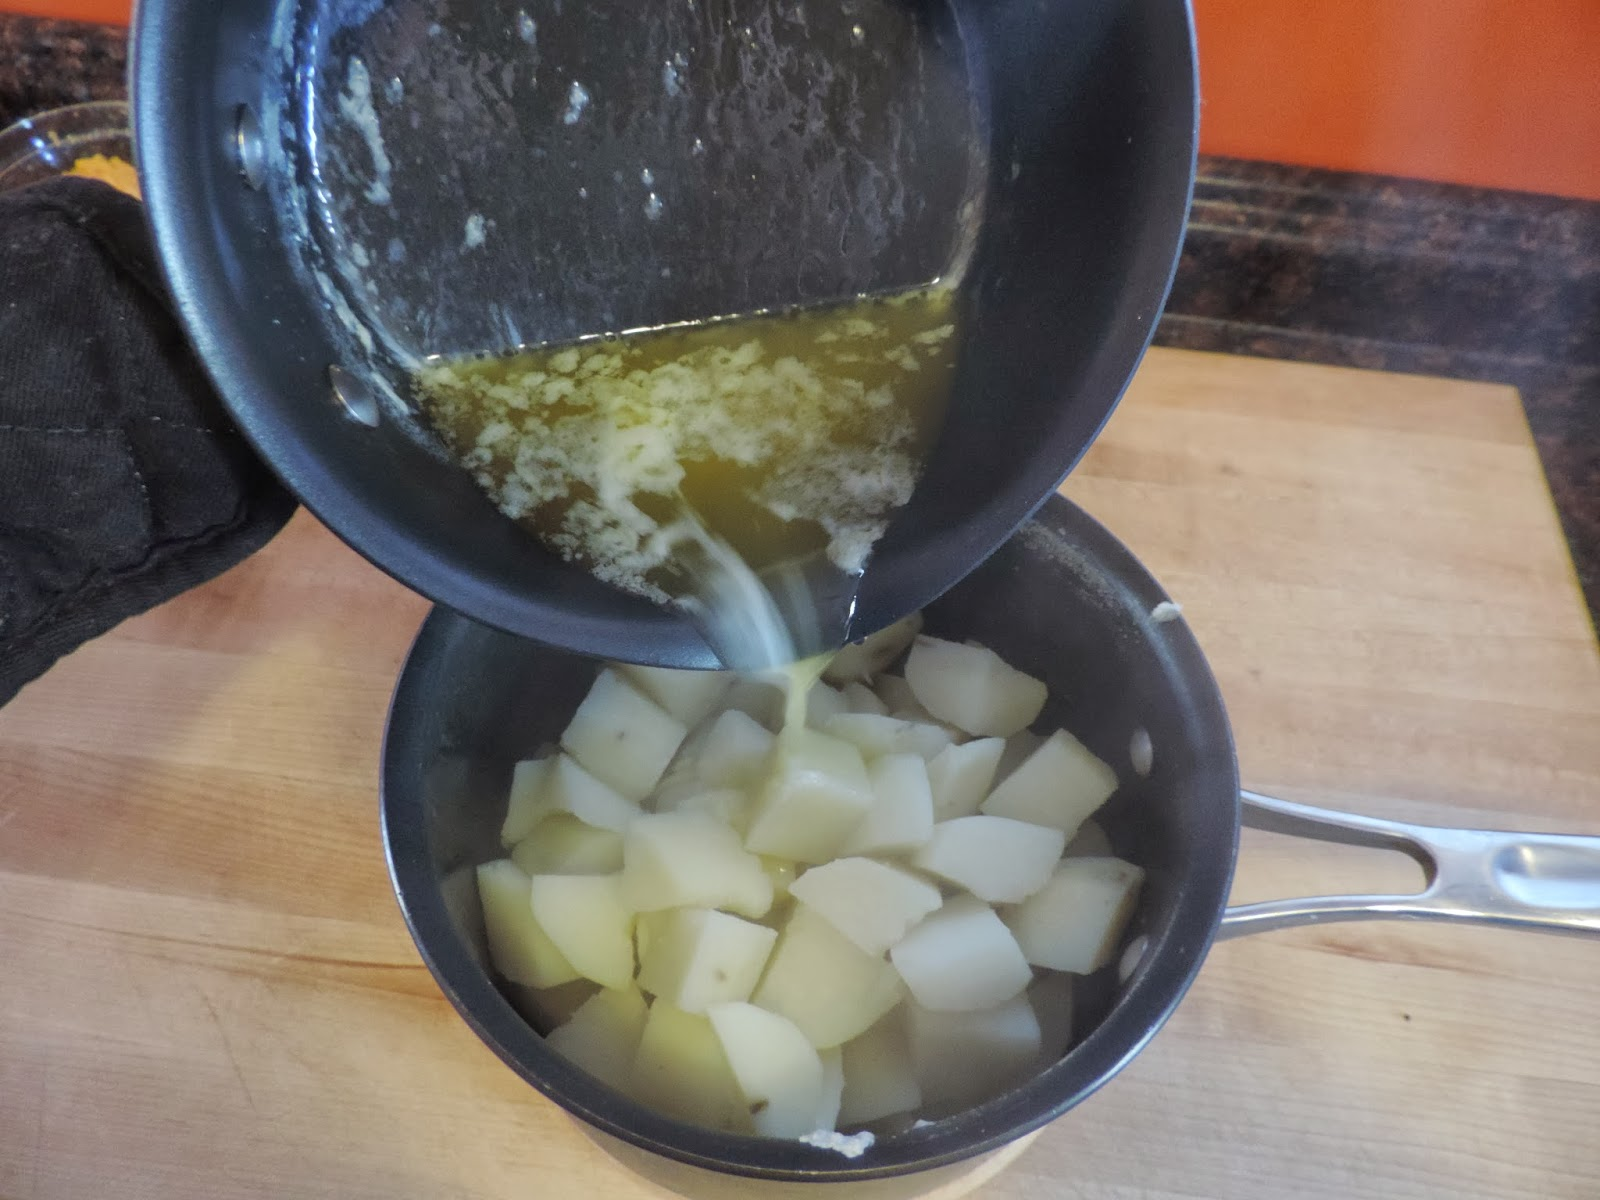 Melted Butter being added to the cooked potatoes in the sauce pan.